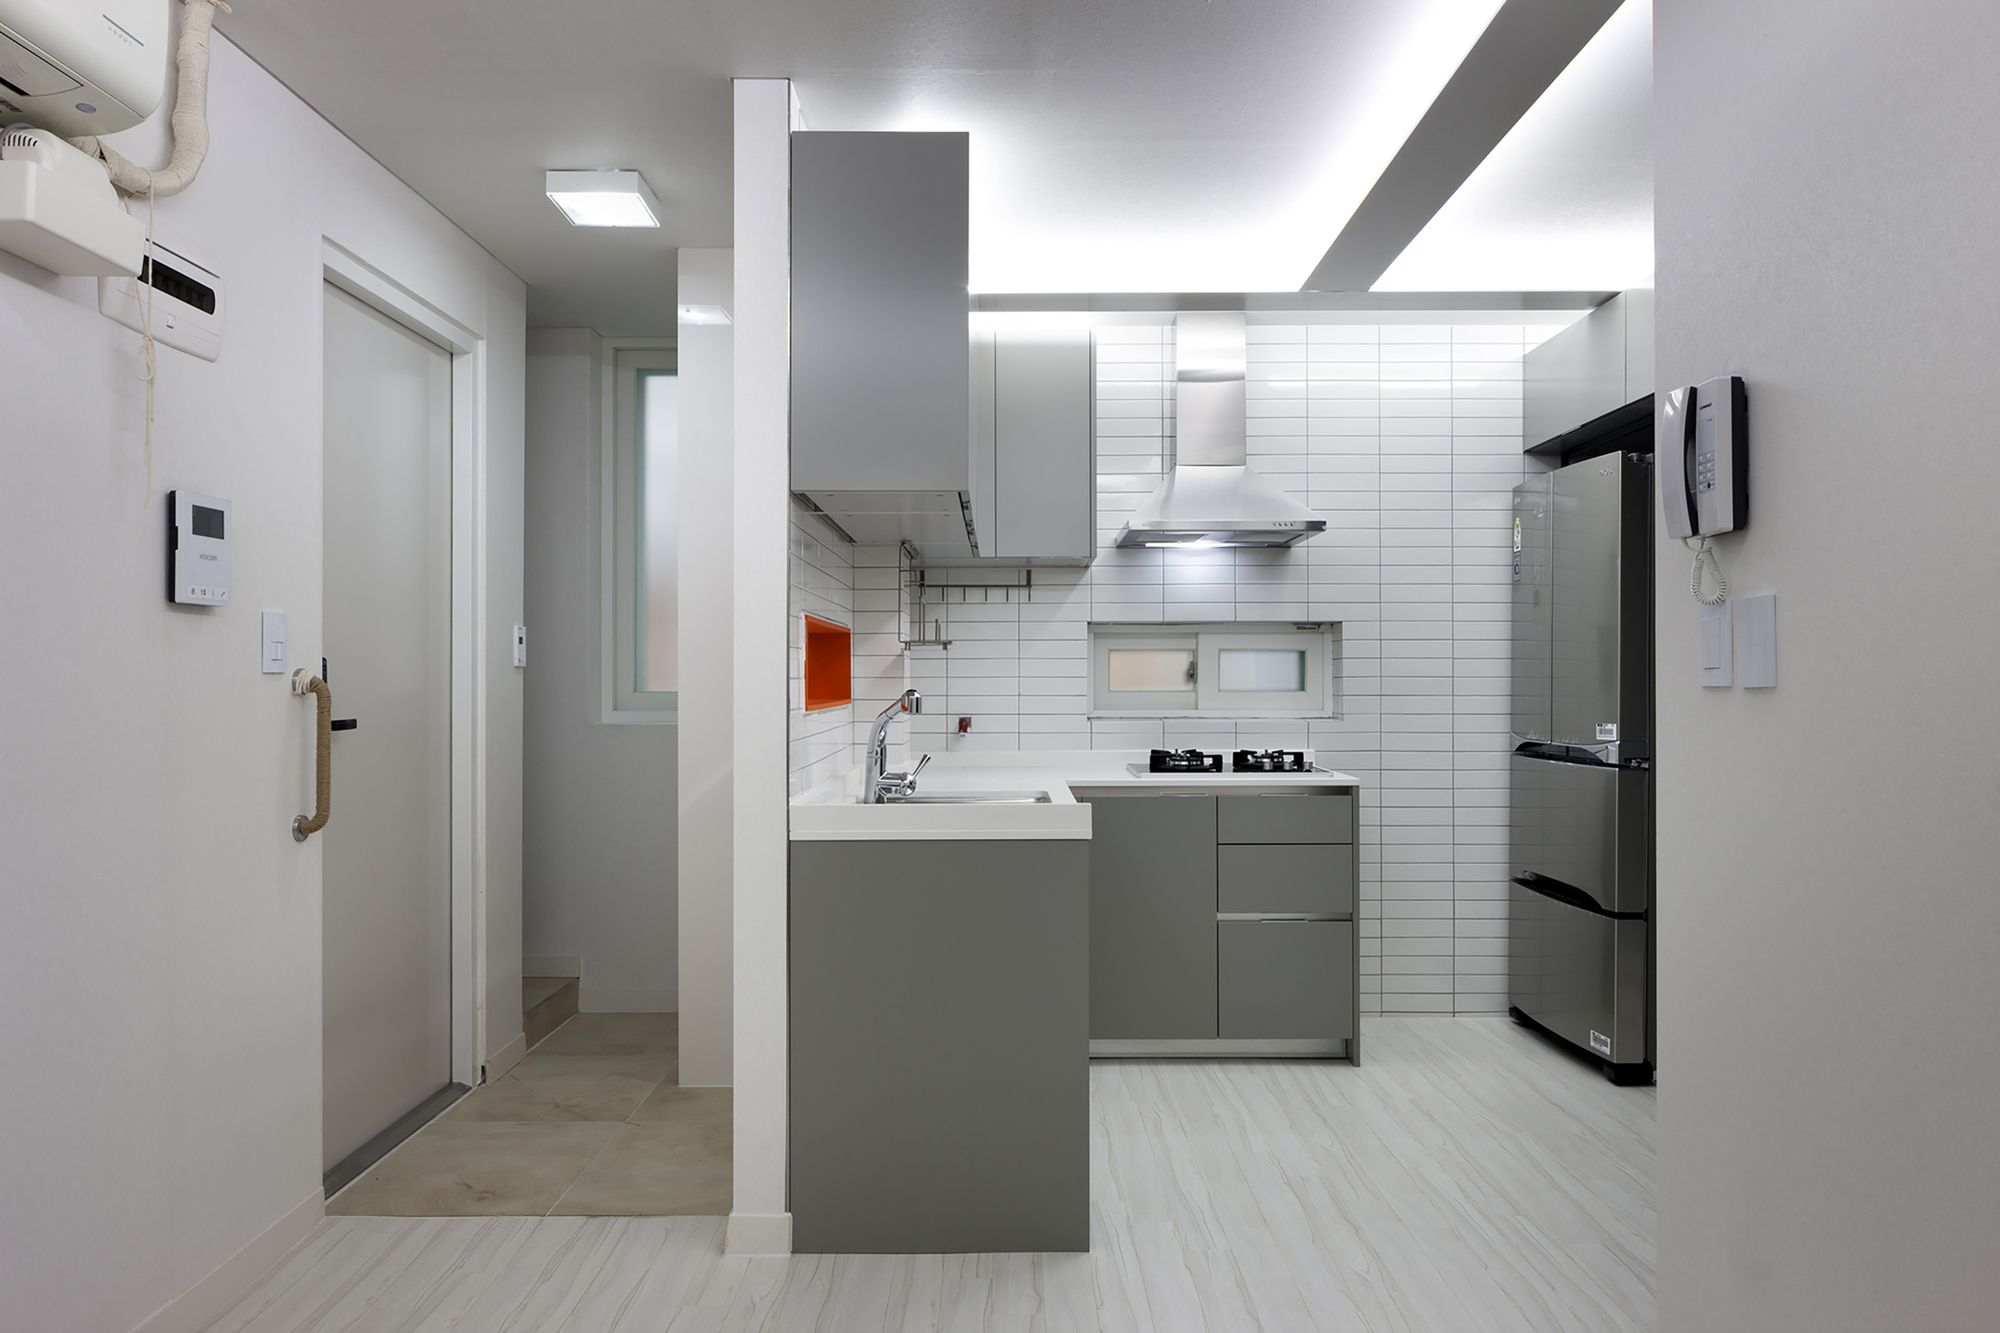 ^ 1000+ images about apartments in south korea on Pinterest  South ...